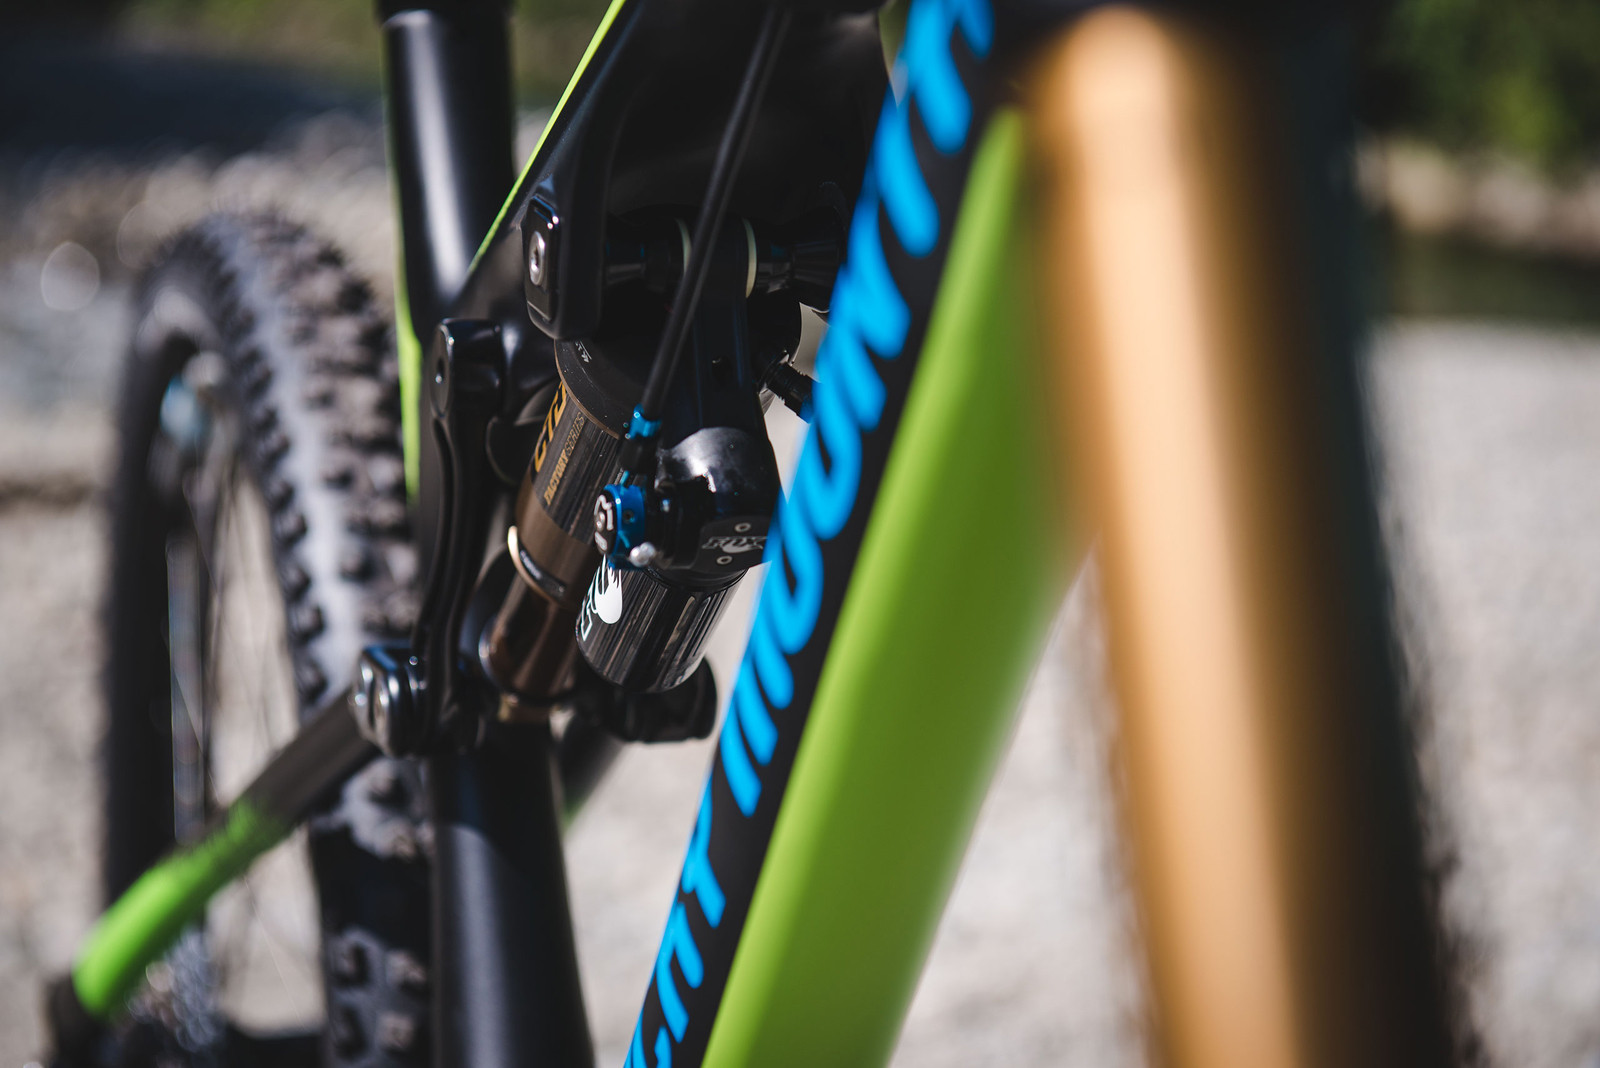 Altitude 770 MSL Rally Edition Suspension - First Look: 2014 Rocky Mountain Altitude Rally Edition - Get Rowdy! - Mountain Biking Pictures - Vital MTB